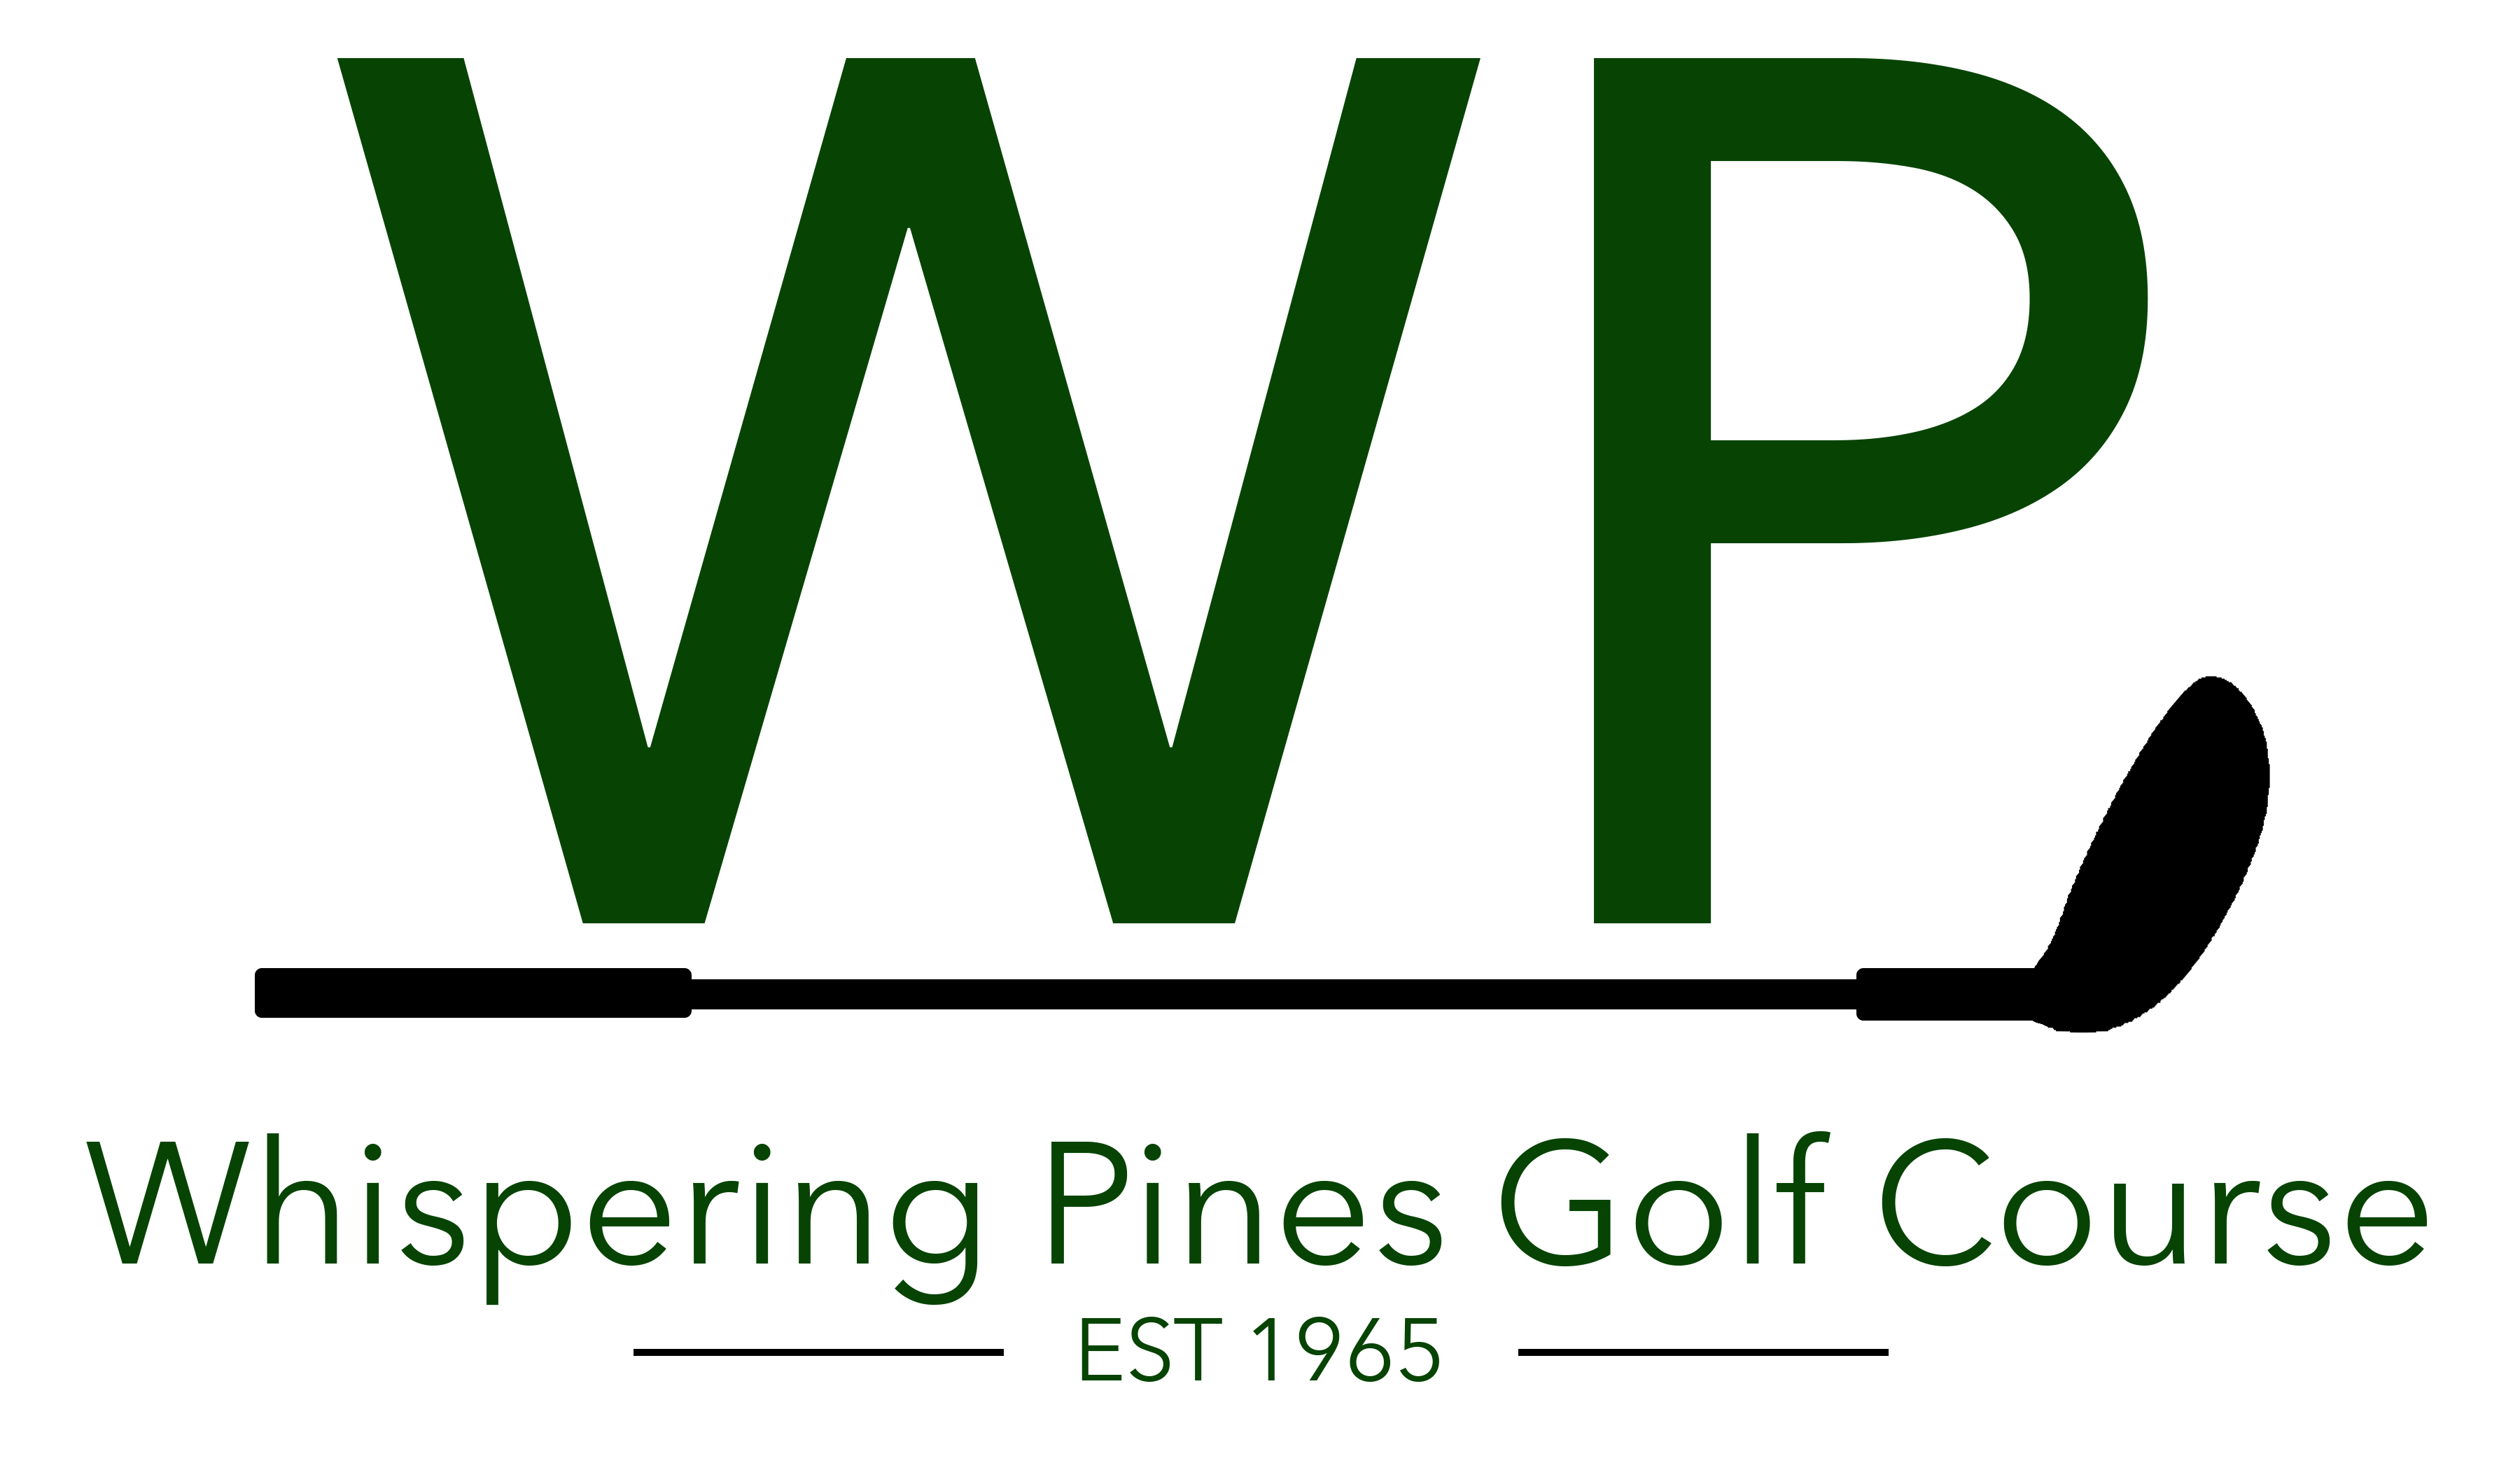 The Village at Whispering Pines logo